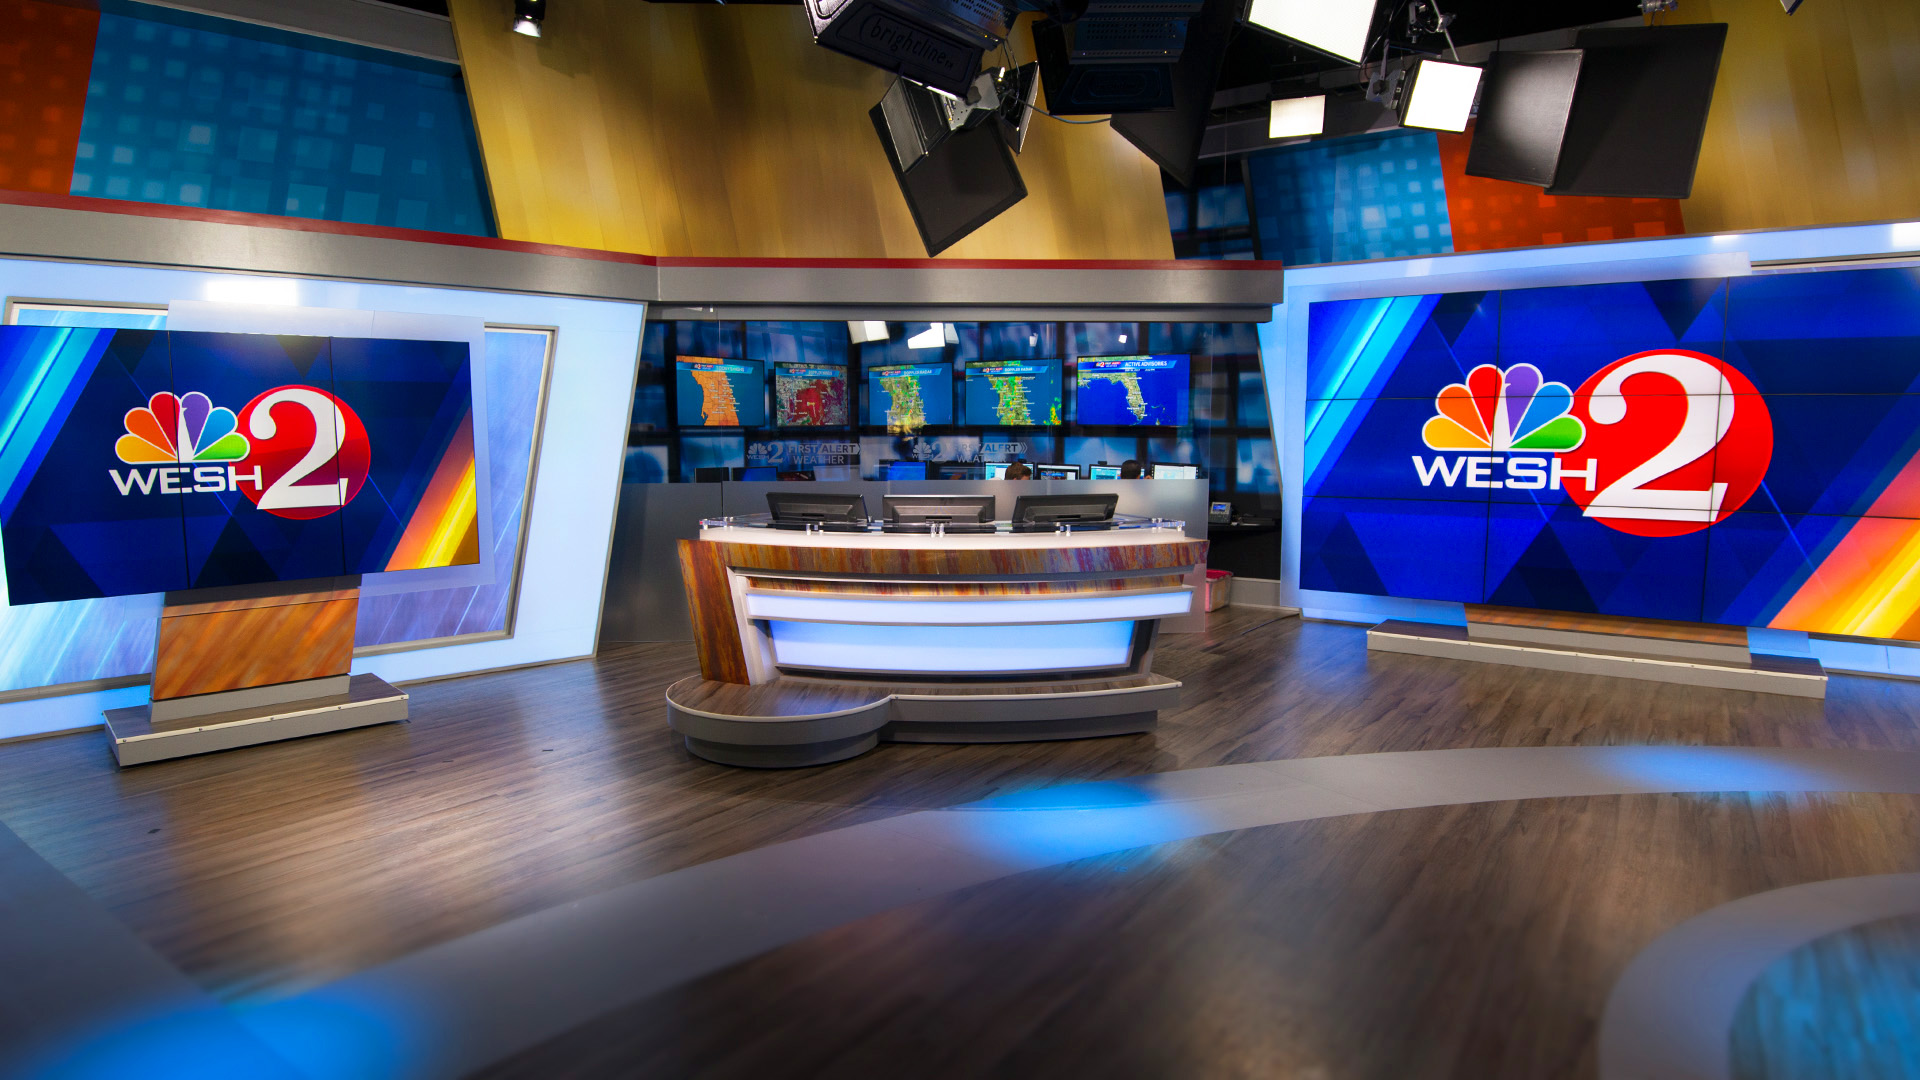 ncs_wesh-2-news-tv-studio-devlin_0002